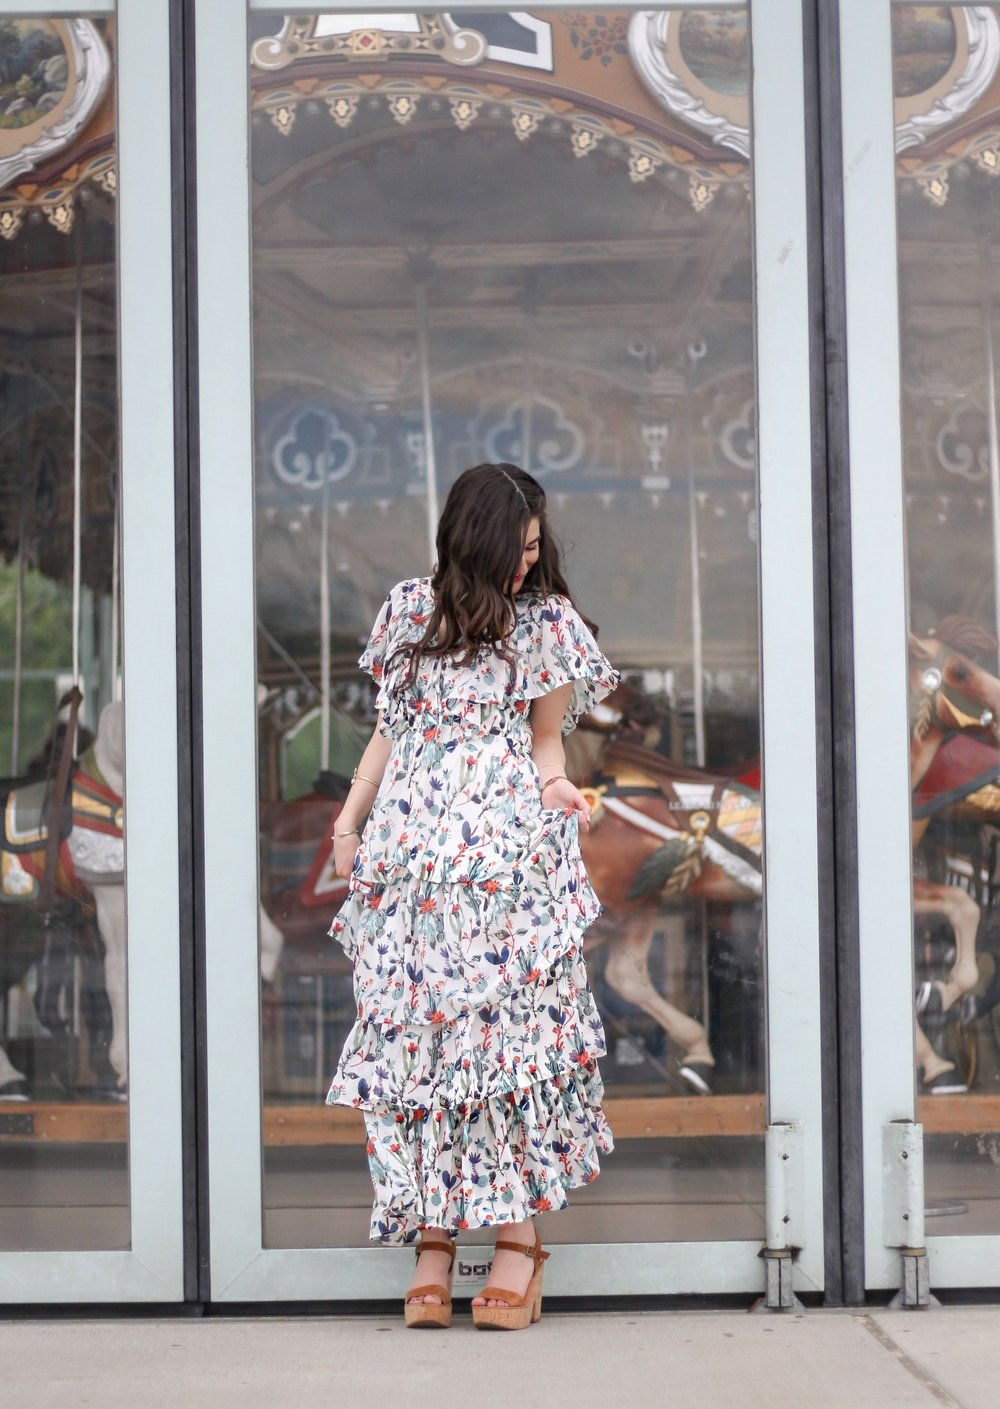 Ruffle Floral Maxi Dress Why You Should Trust Me Esther Santer Fashion Blog NYC Street Style Blogger Outfit OOTD Trendy Summer Outdoors Pretty Girly Photoshoot Feminine Beautiful Model Accessories Shop Women Wedges Sandals Shoes Gold Bracelets Jewelry.JPG